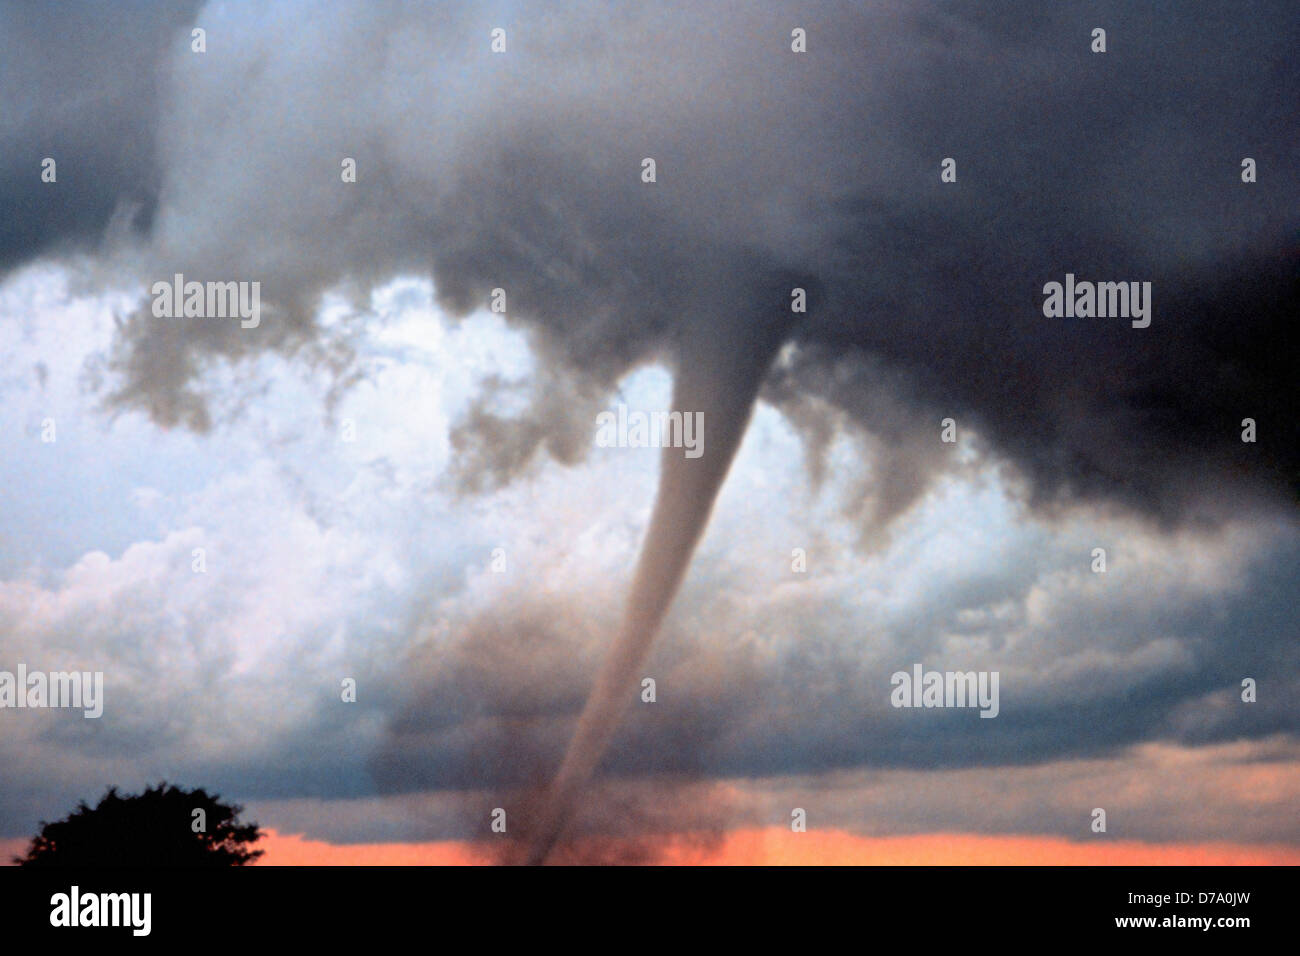 Occluded Mesocyclone Tornado Rated F3 - Stock Image